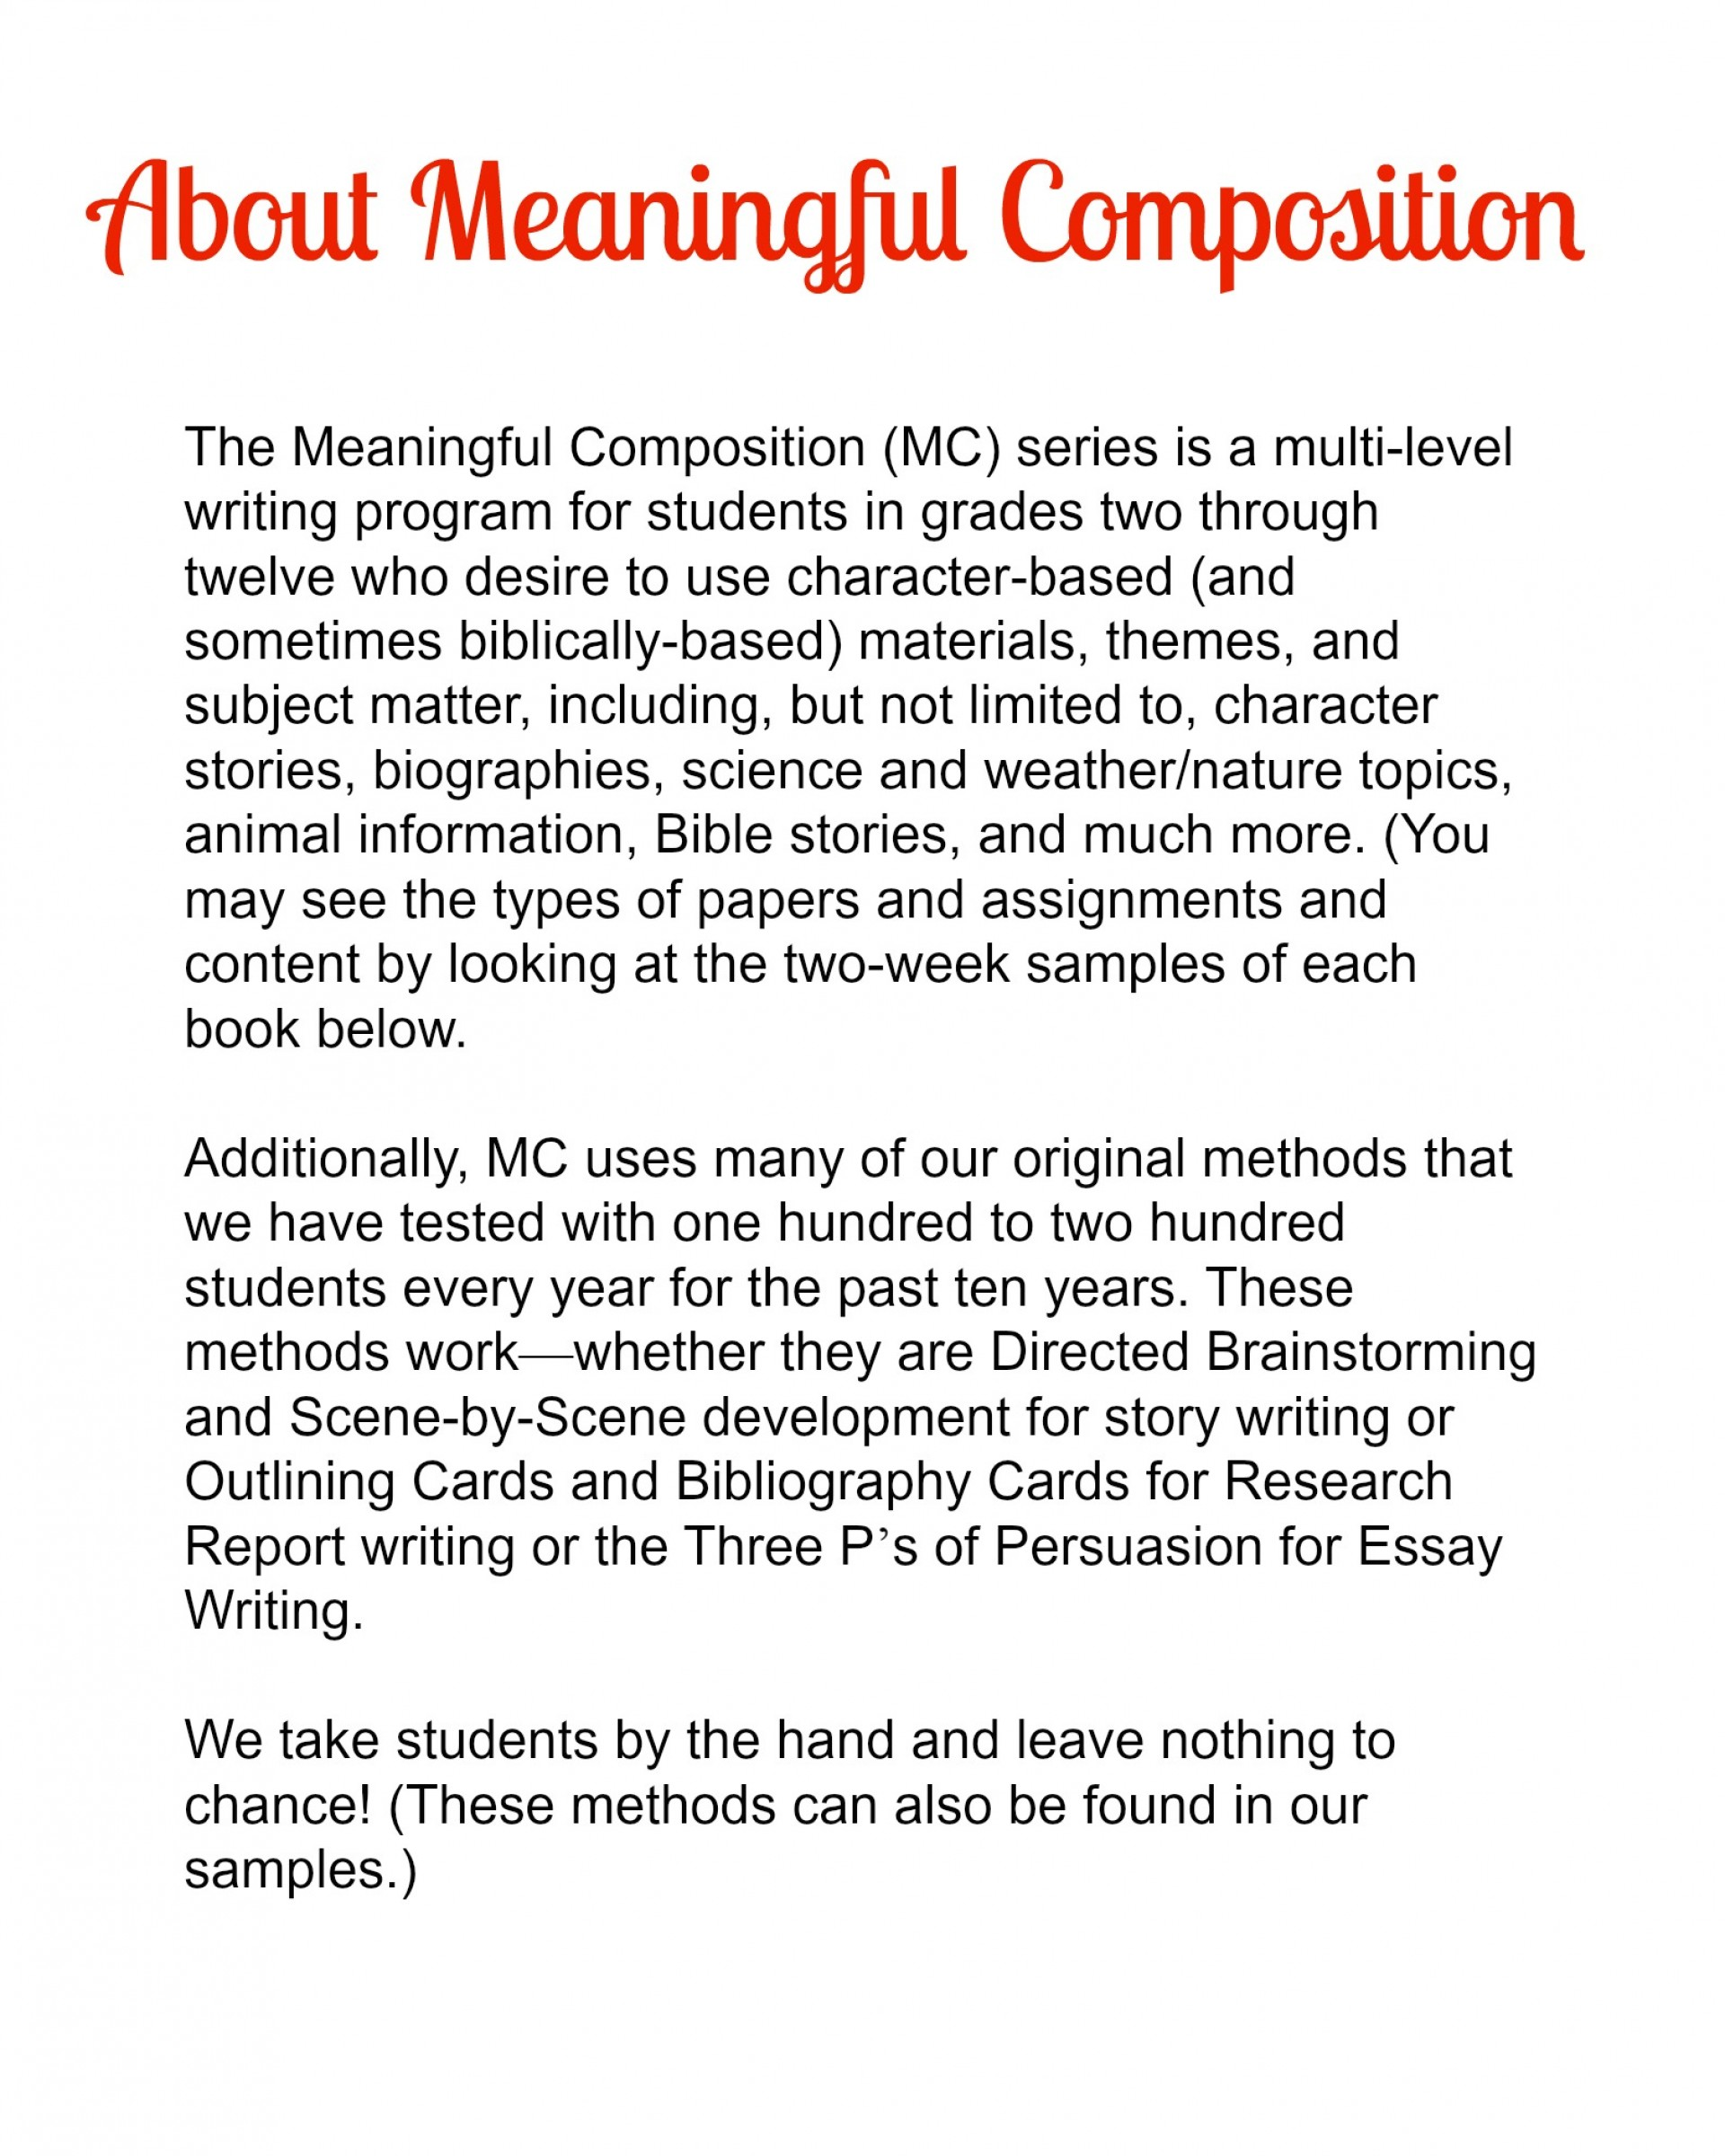 011 Essay Example Expository Examples Of Introductions Creative Writing Course Paragraph Persuasive On Bullyingbout Meaningful Compos Cyber How To Prevent Five Exceptional A Thesis Statement For Middle School Argumentative Ppt 4th Grade 1920